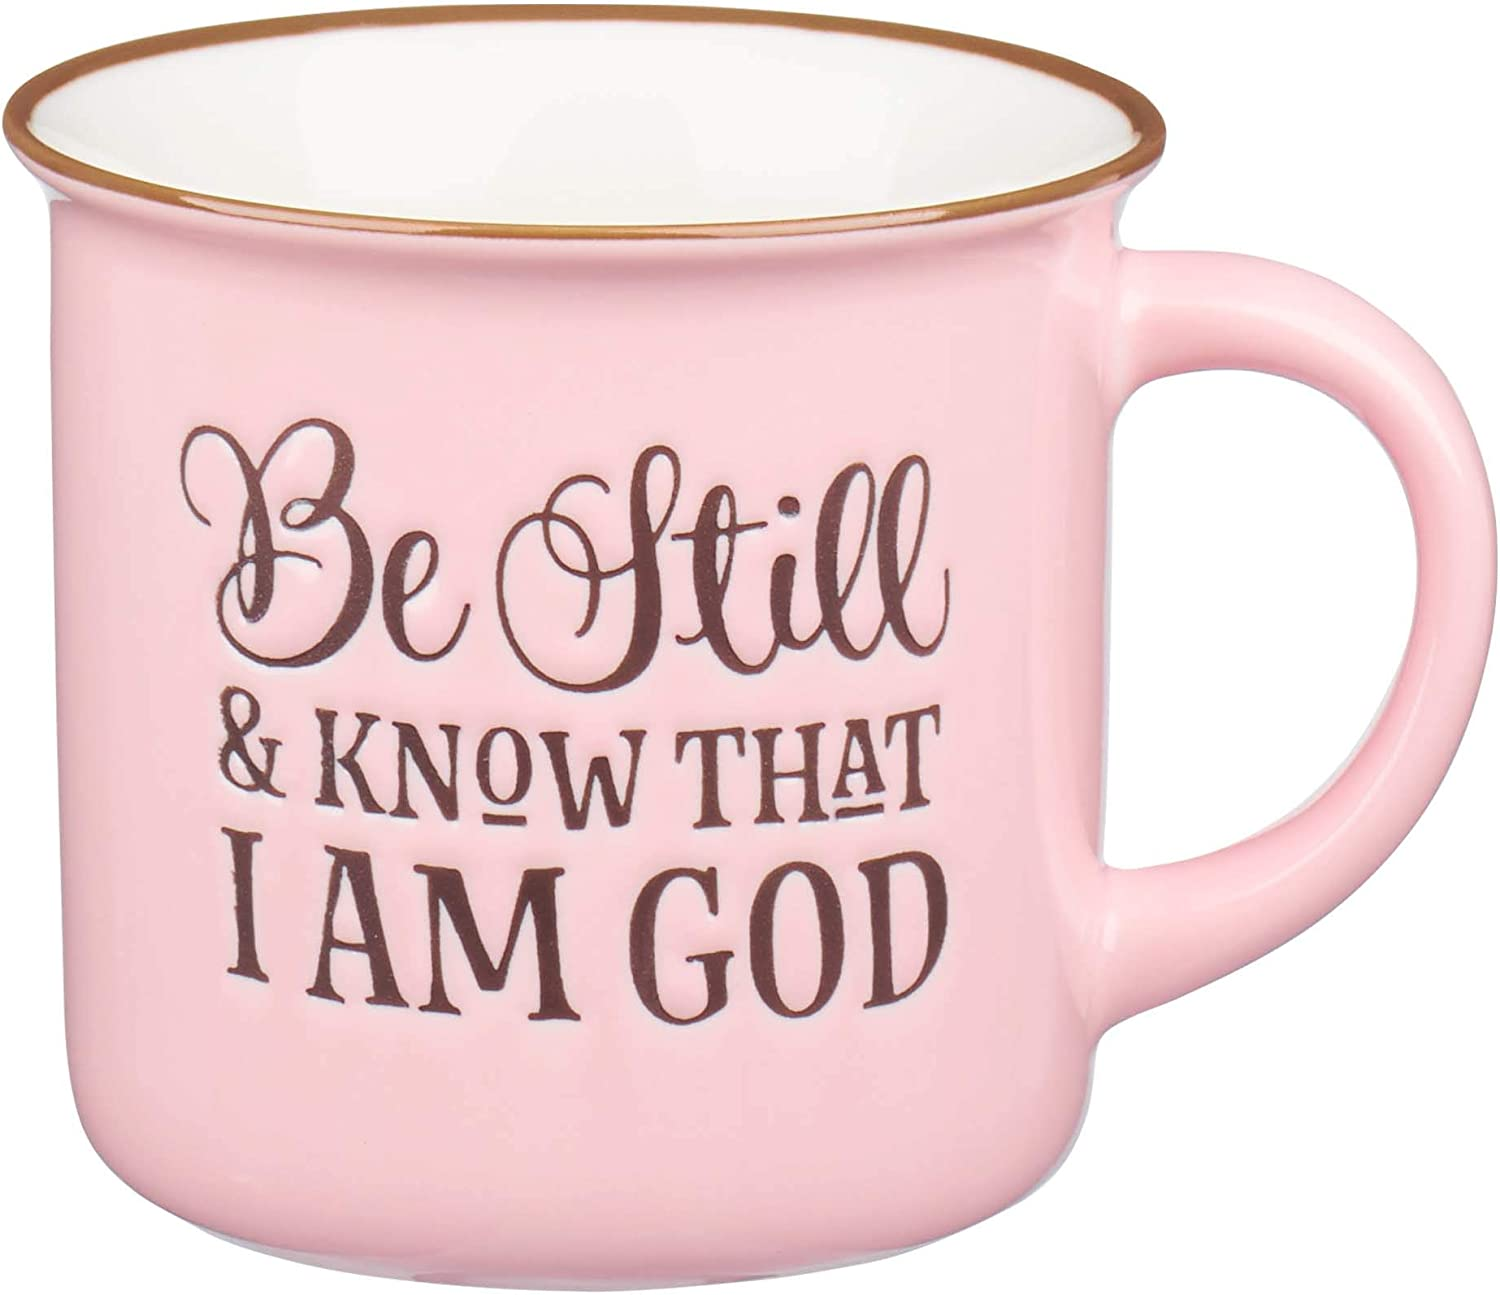 Be Still super welcome and Know Pink Camp Outlet sale feature Cerami 46:10 Mug Coffee Style Psalm